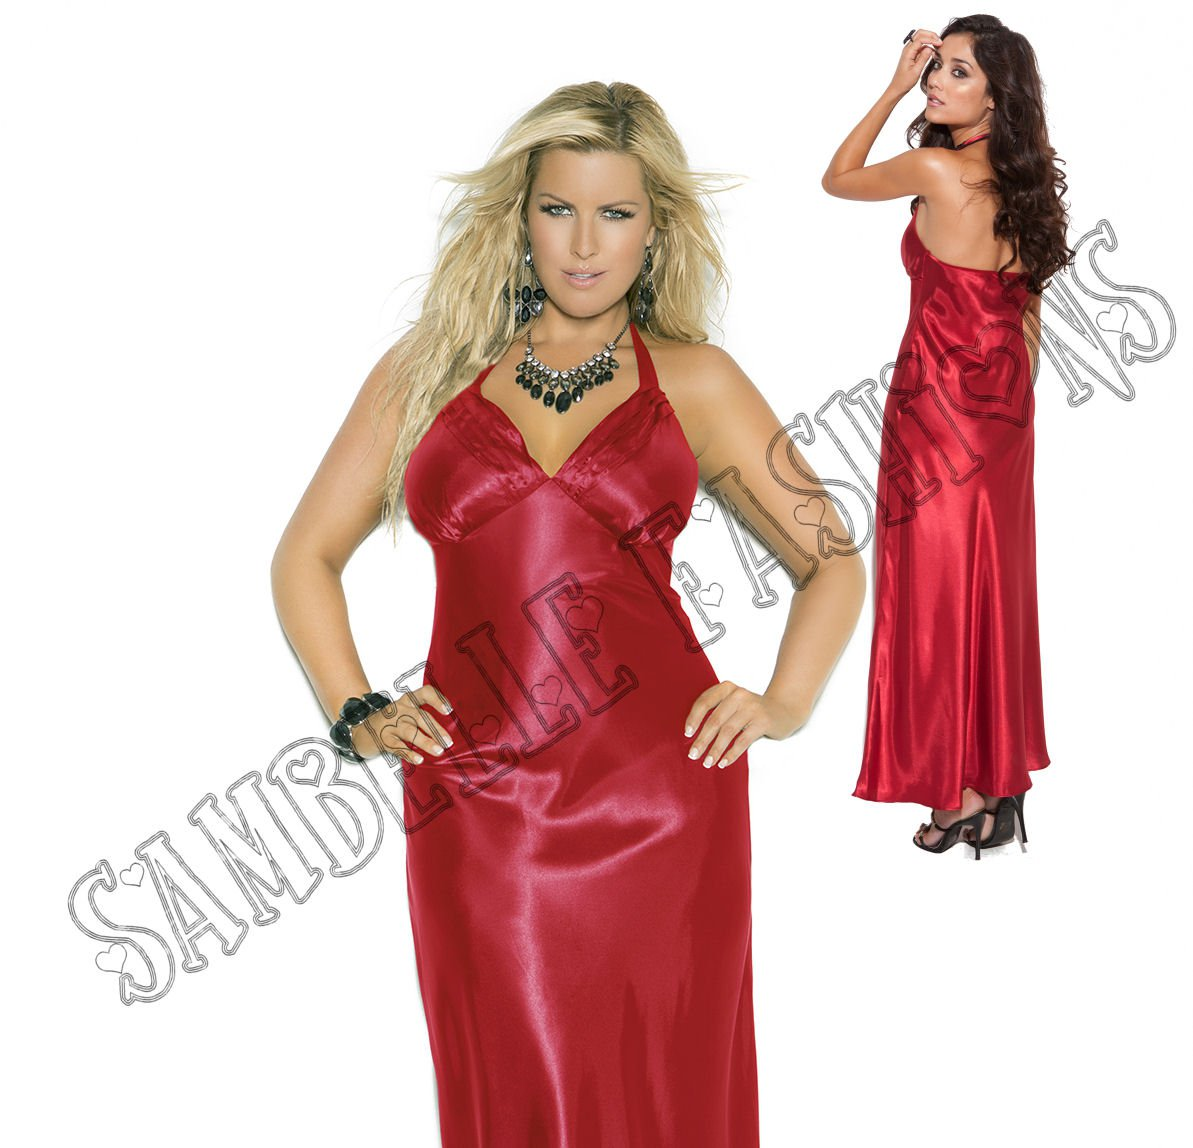 Red Charmeuse Satin Halter Neck Gown - 3X